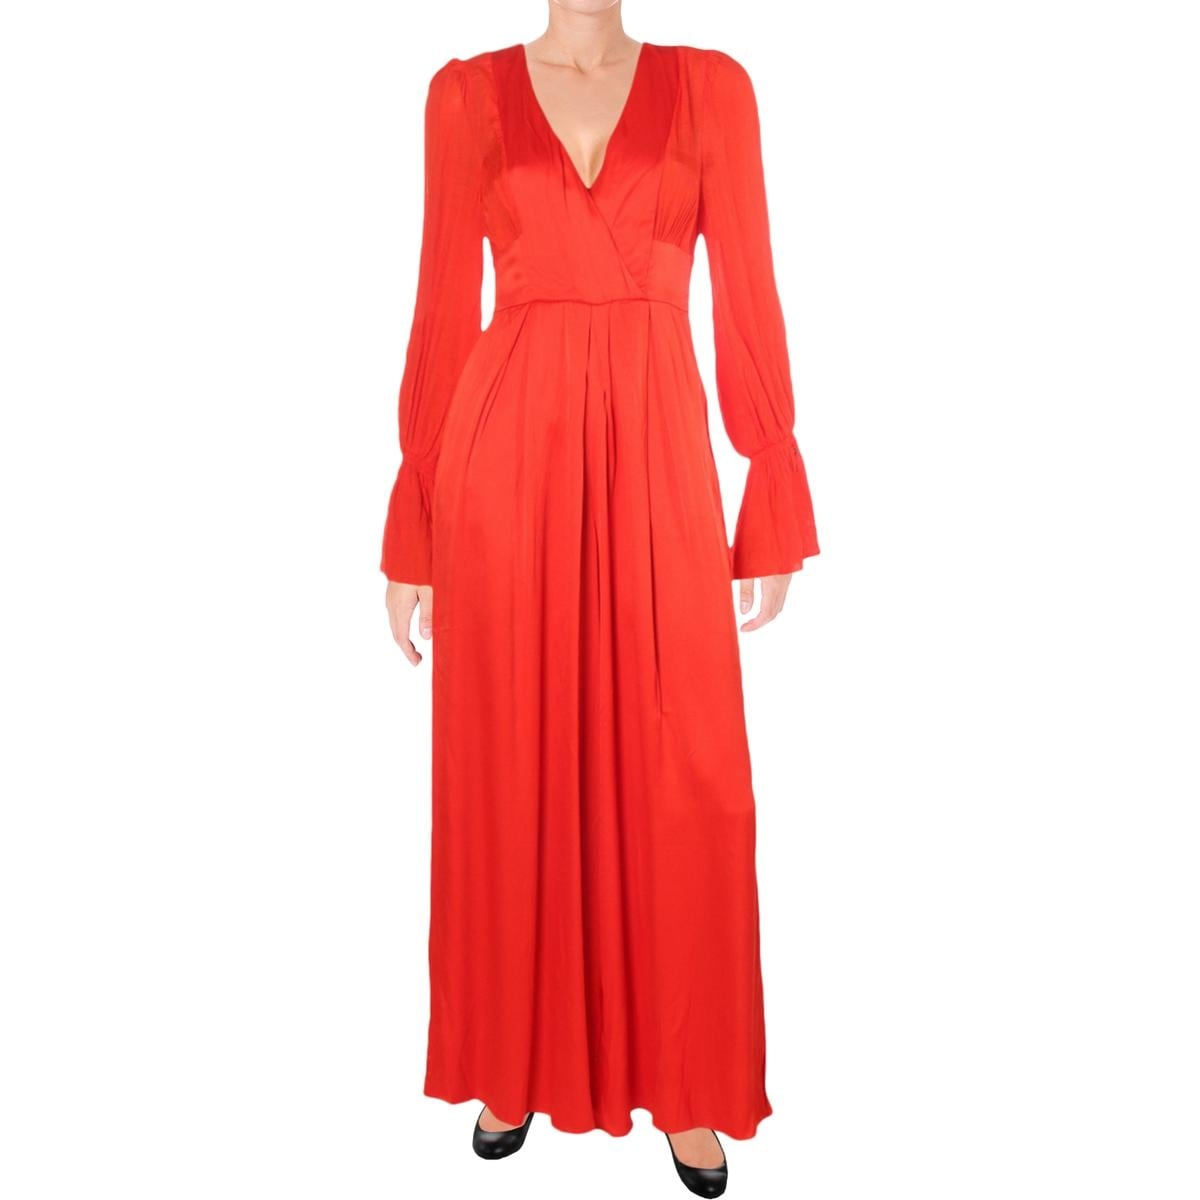 89d7d9a4a4 Shop Free People Womens Not Your Baby Jumpsuit Wide Leg Mixed Media ...